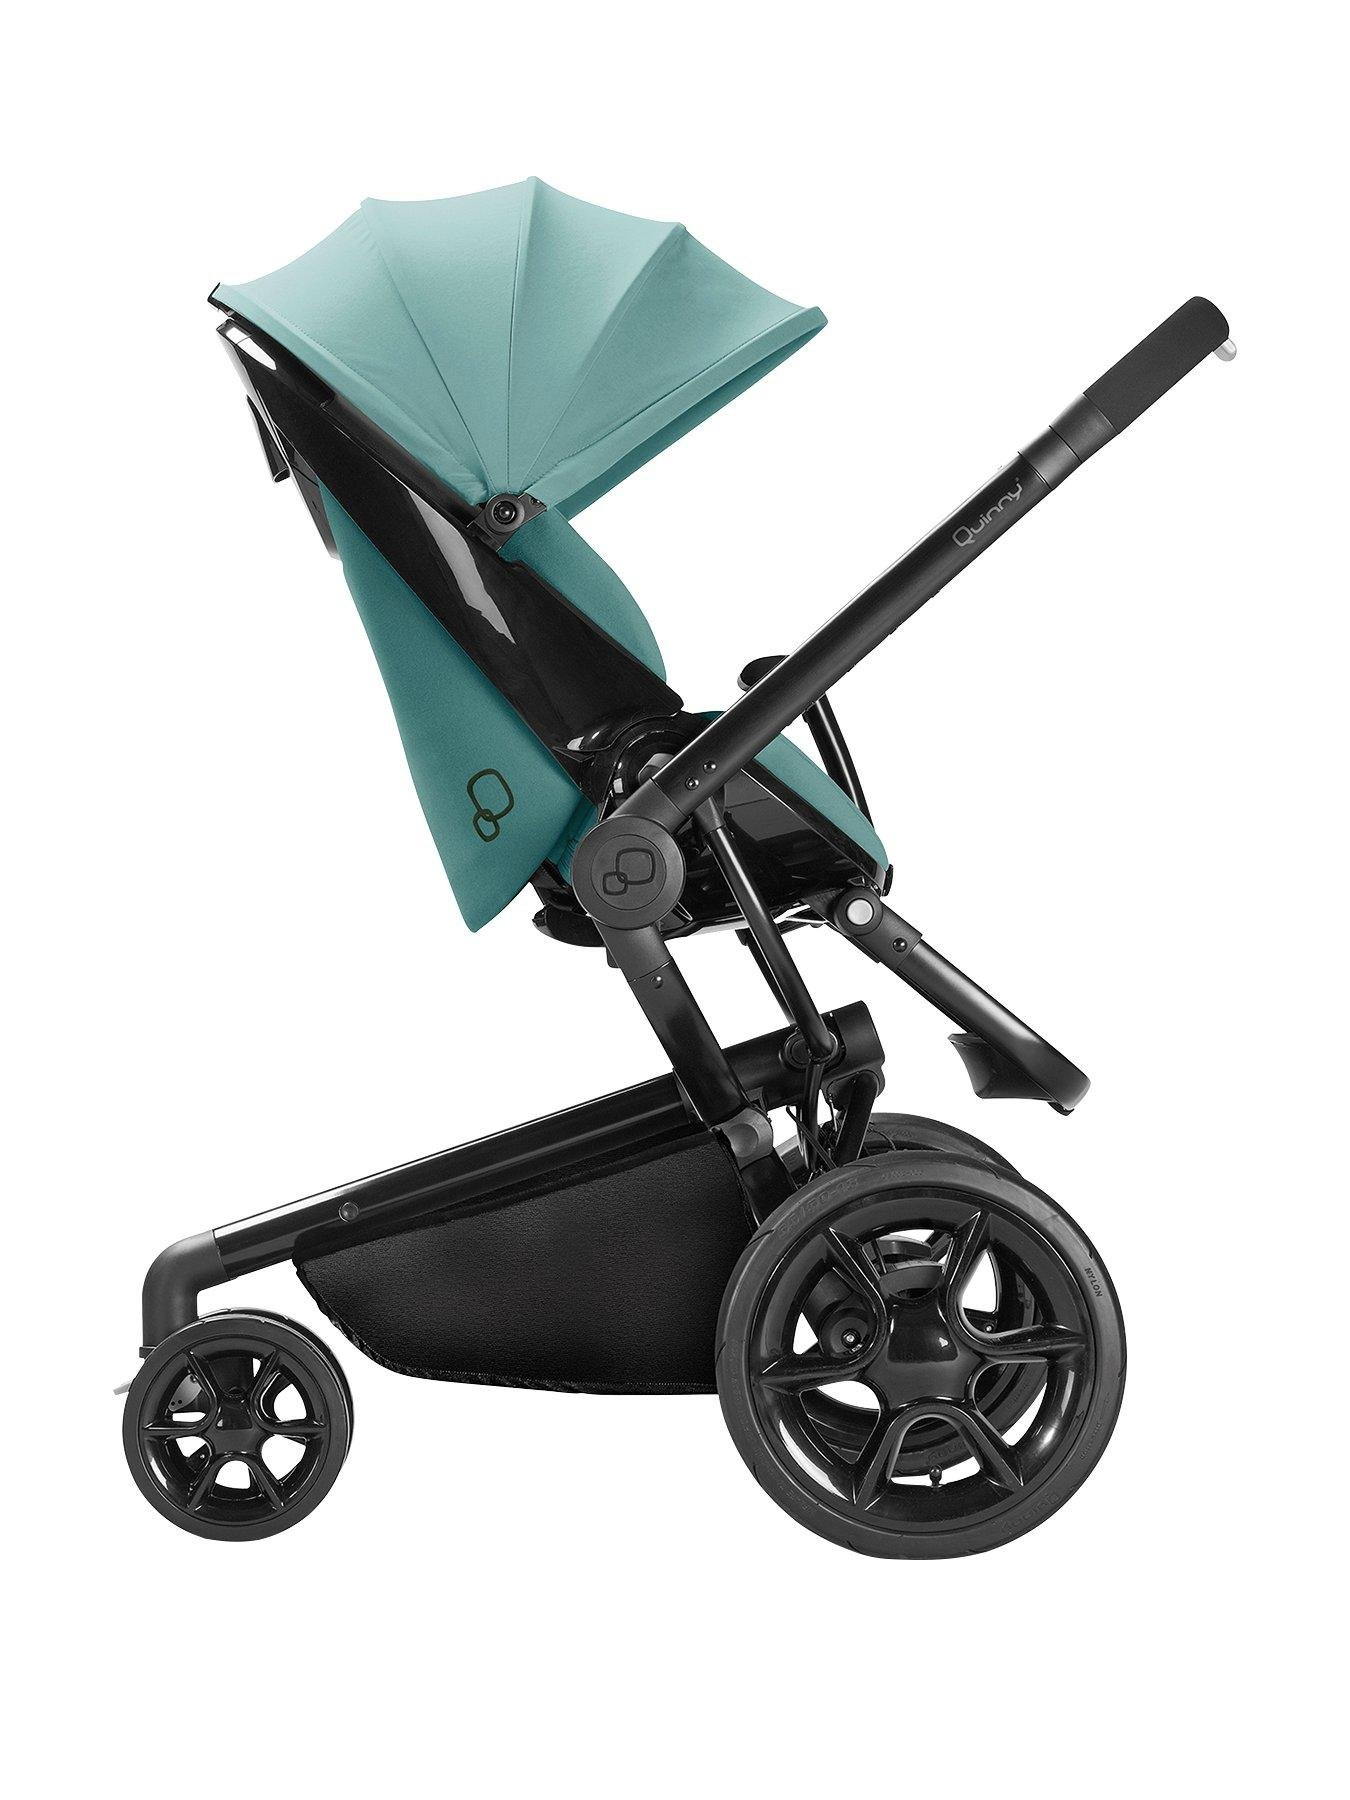 Quinny Quinny Moodd Pushchair, Foldable Carrycot, Pebble Car Seat Package - Novel Nile Quinny  3